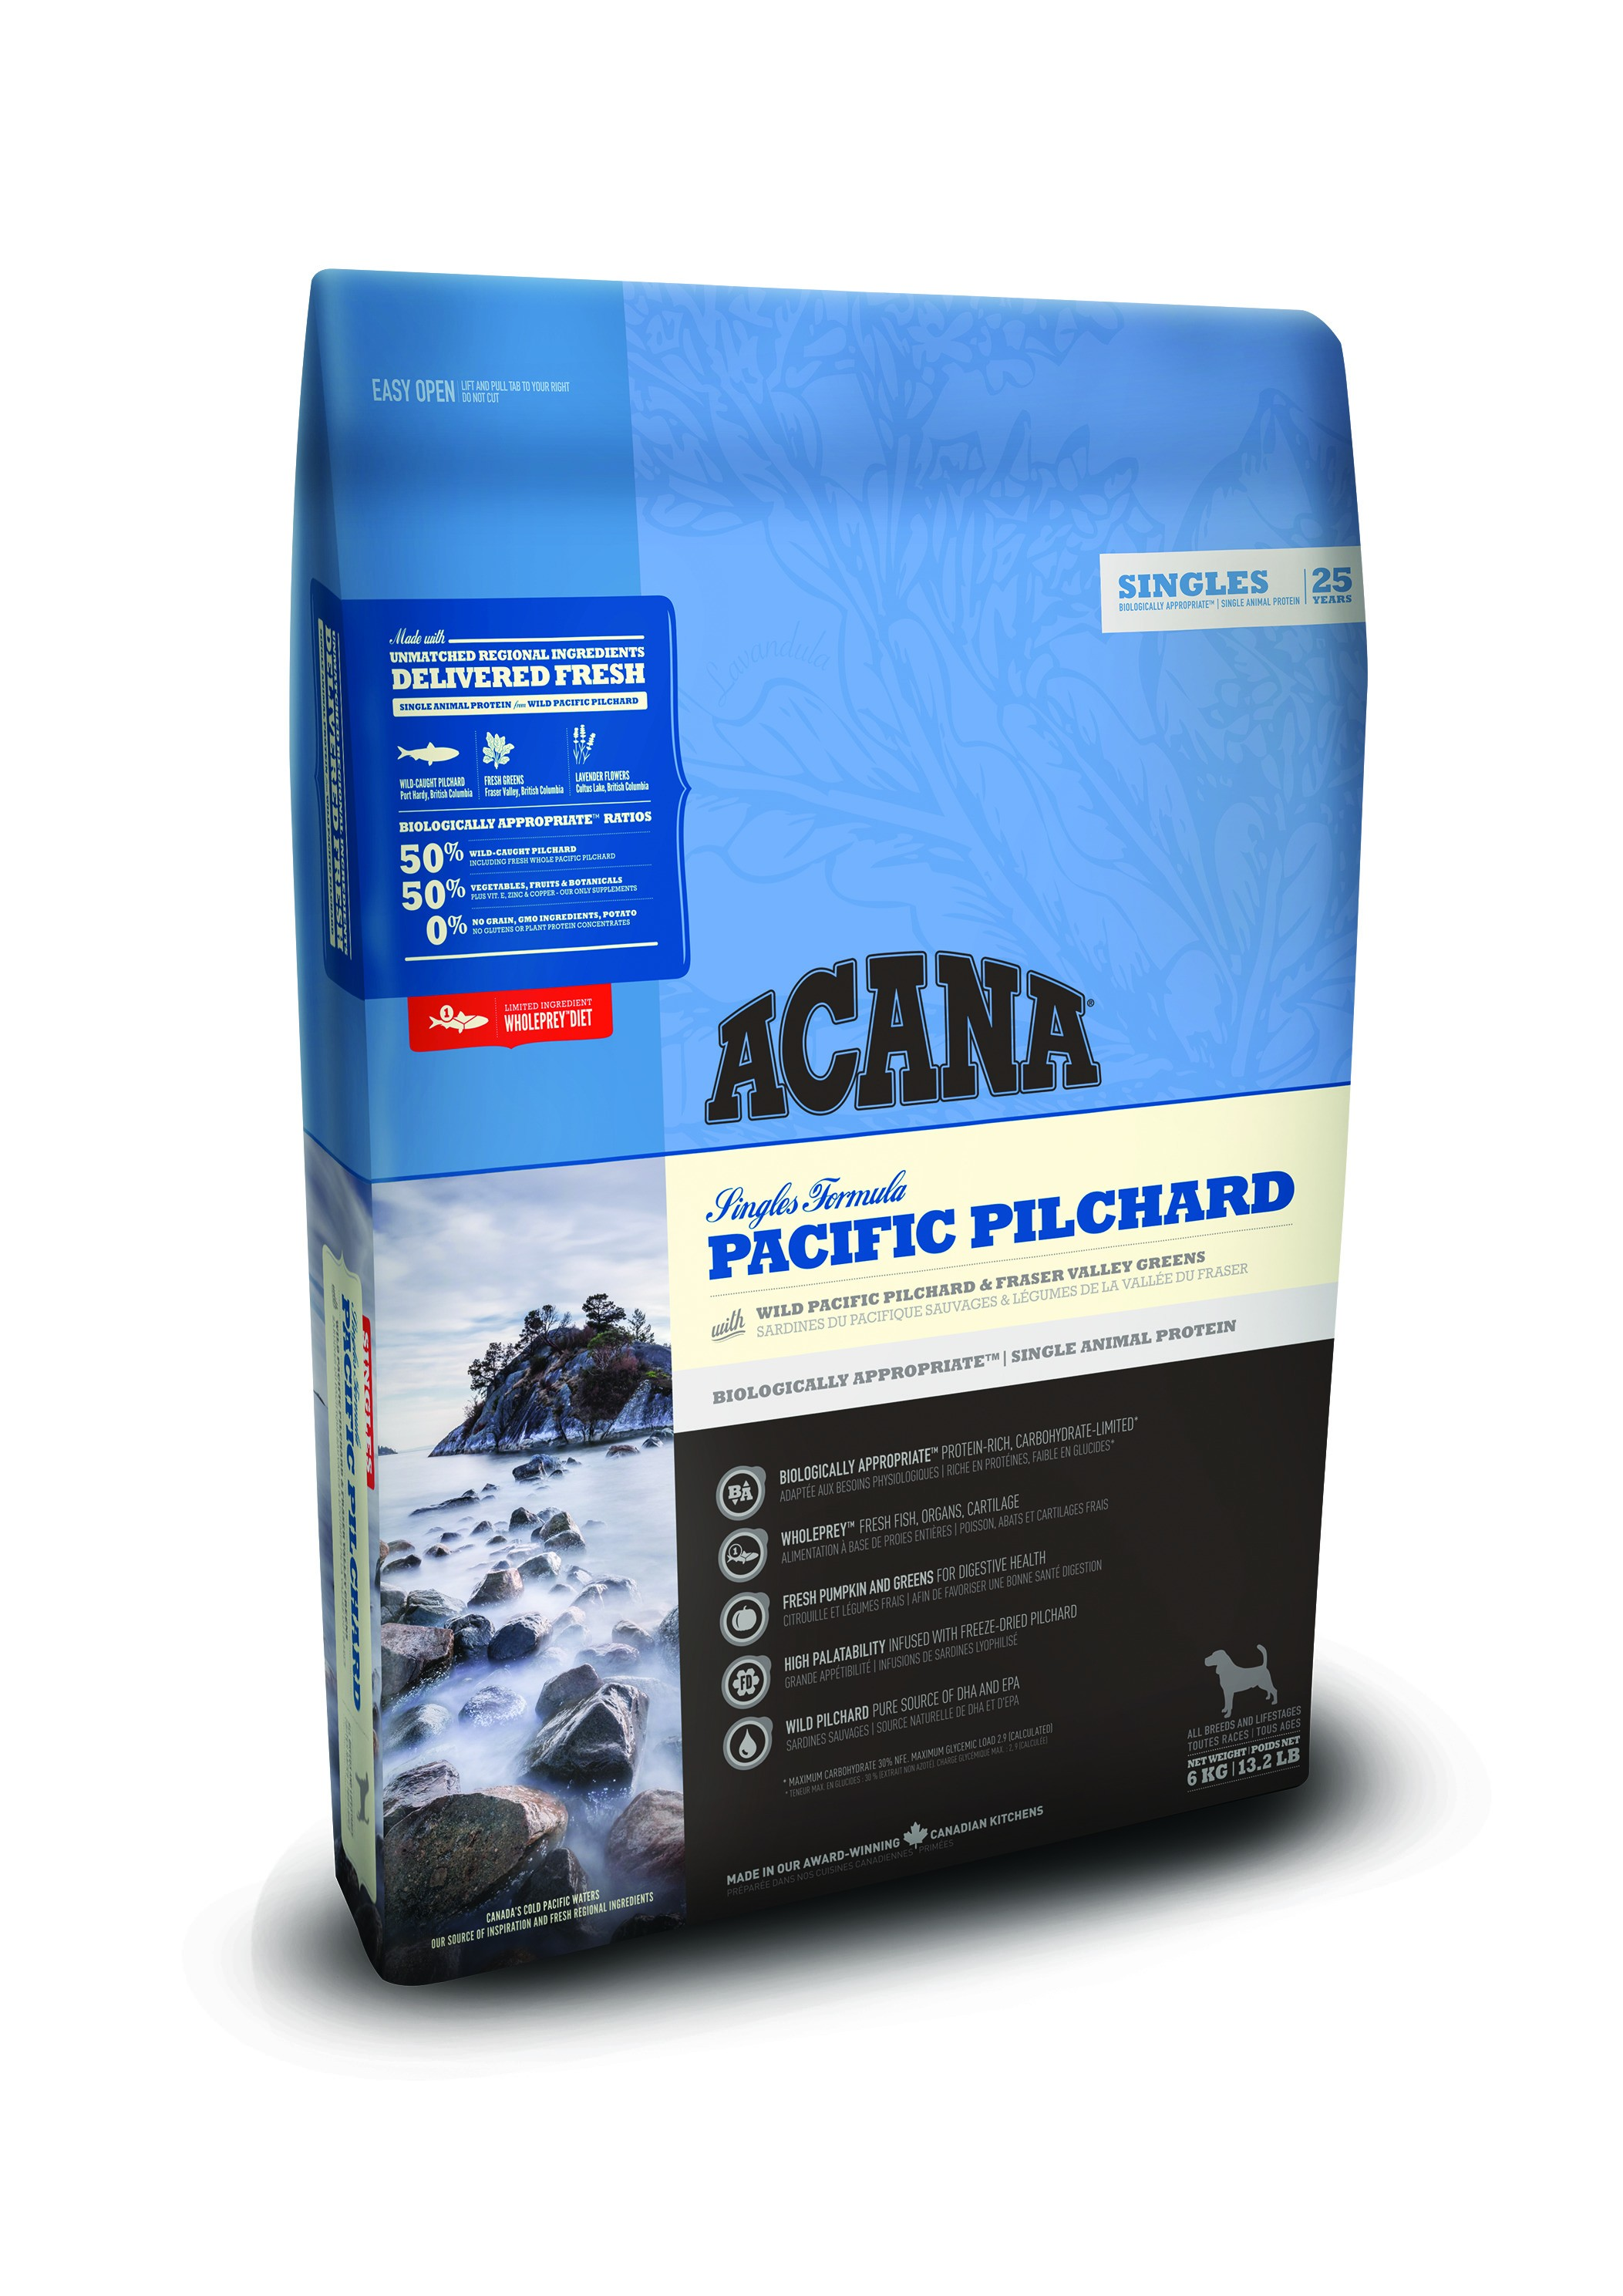 Acana Singles - Pacific Pilchard